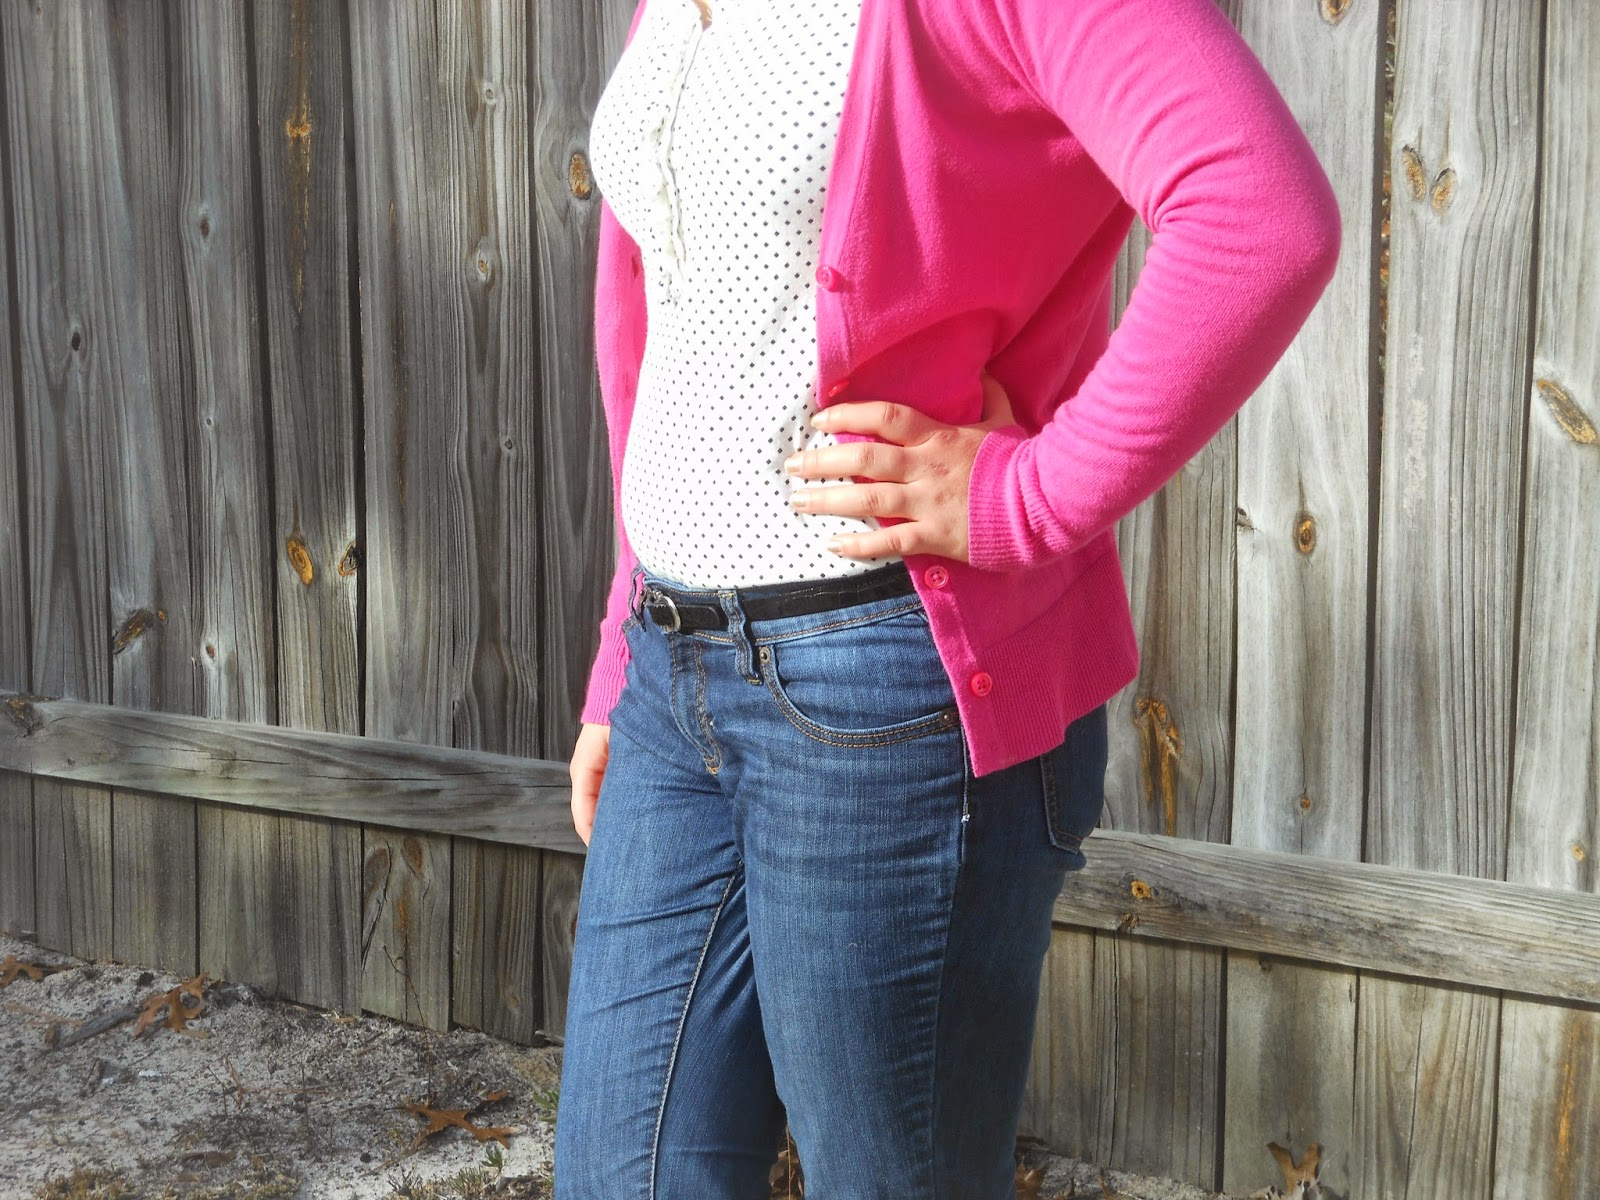 Valentine's Week Day 1: Classic Pink + 14 Days of Love Day 2. Polka dot top, jeans, pink cardigan, black belt, simple jewelry.